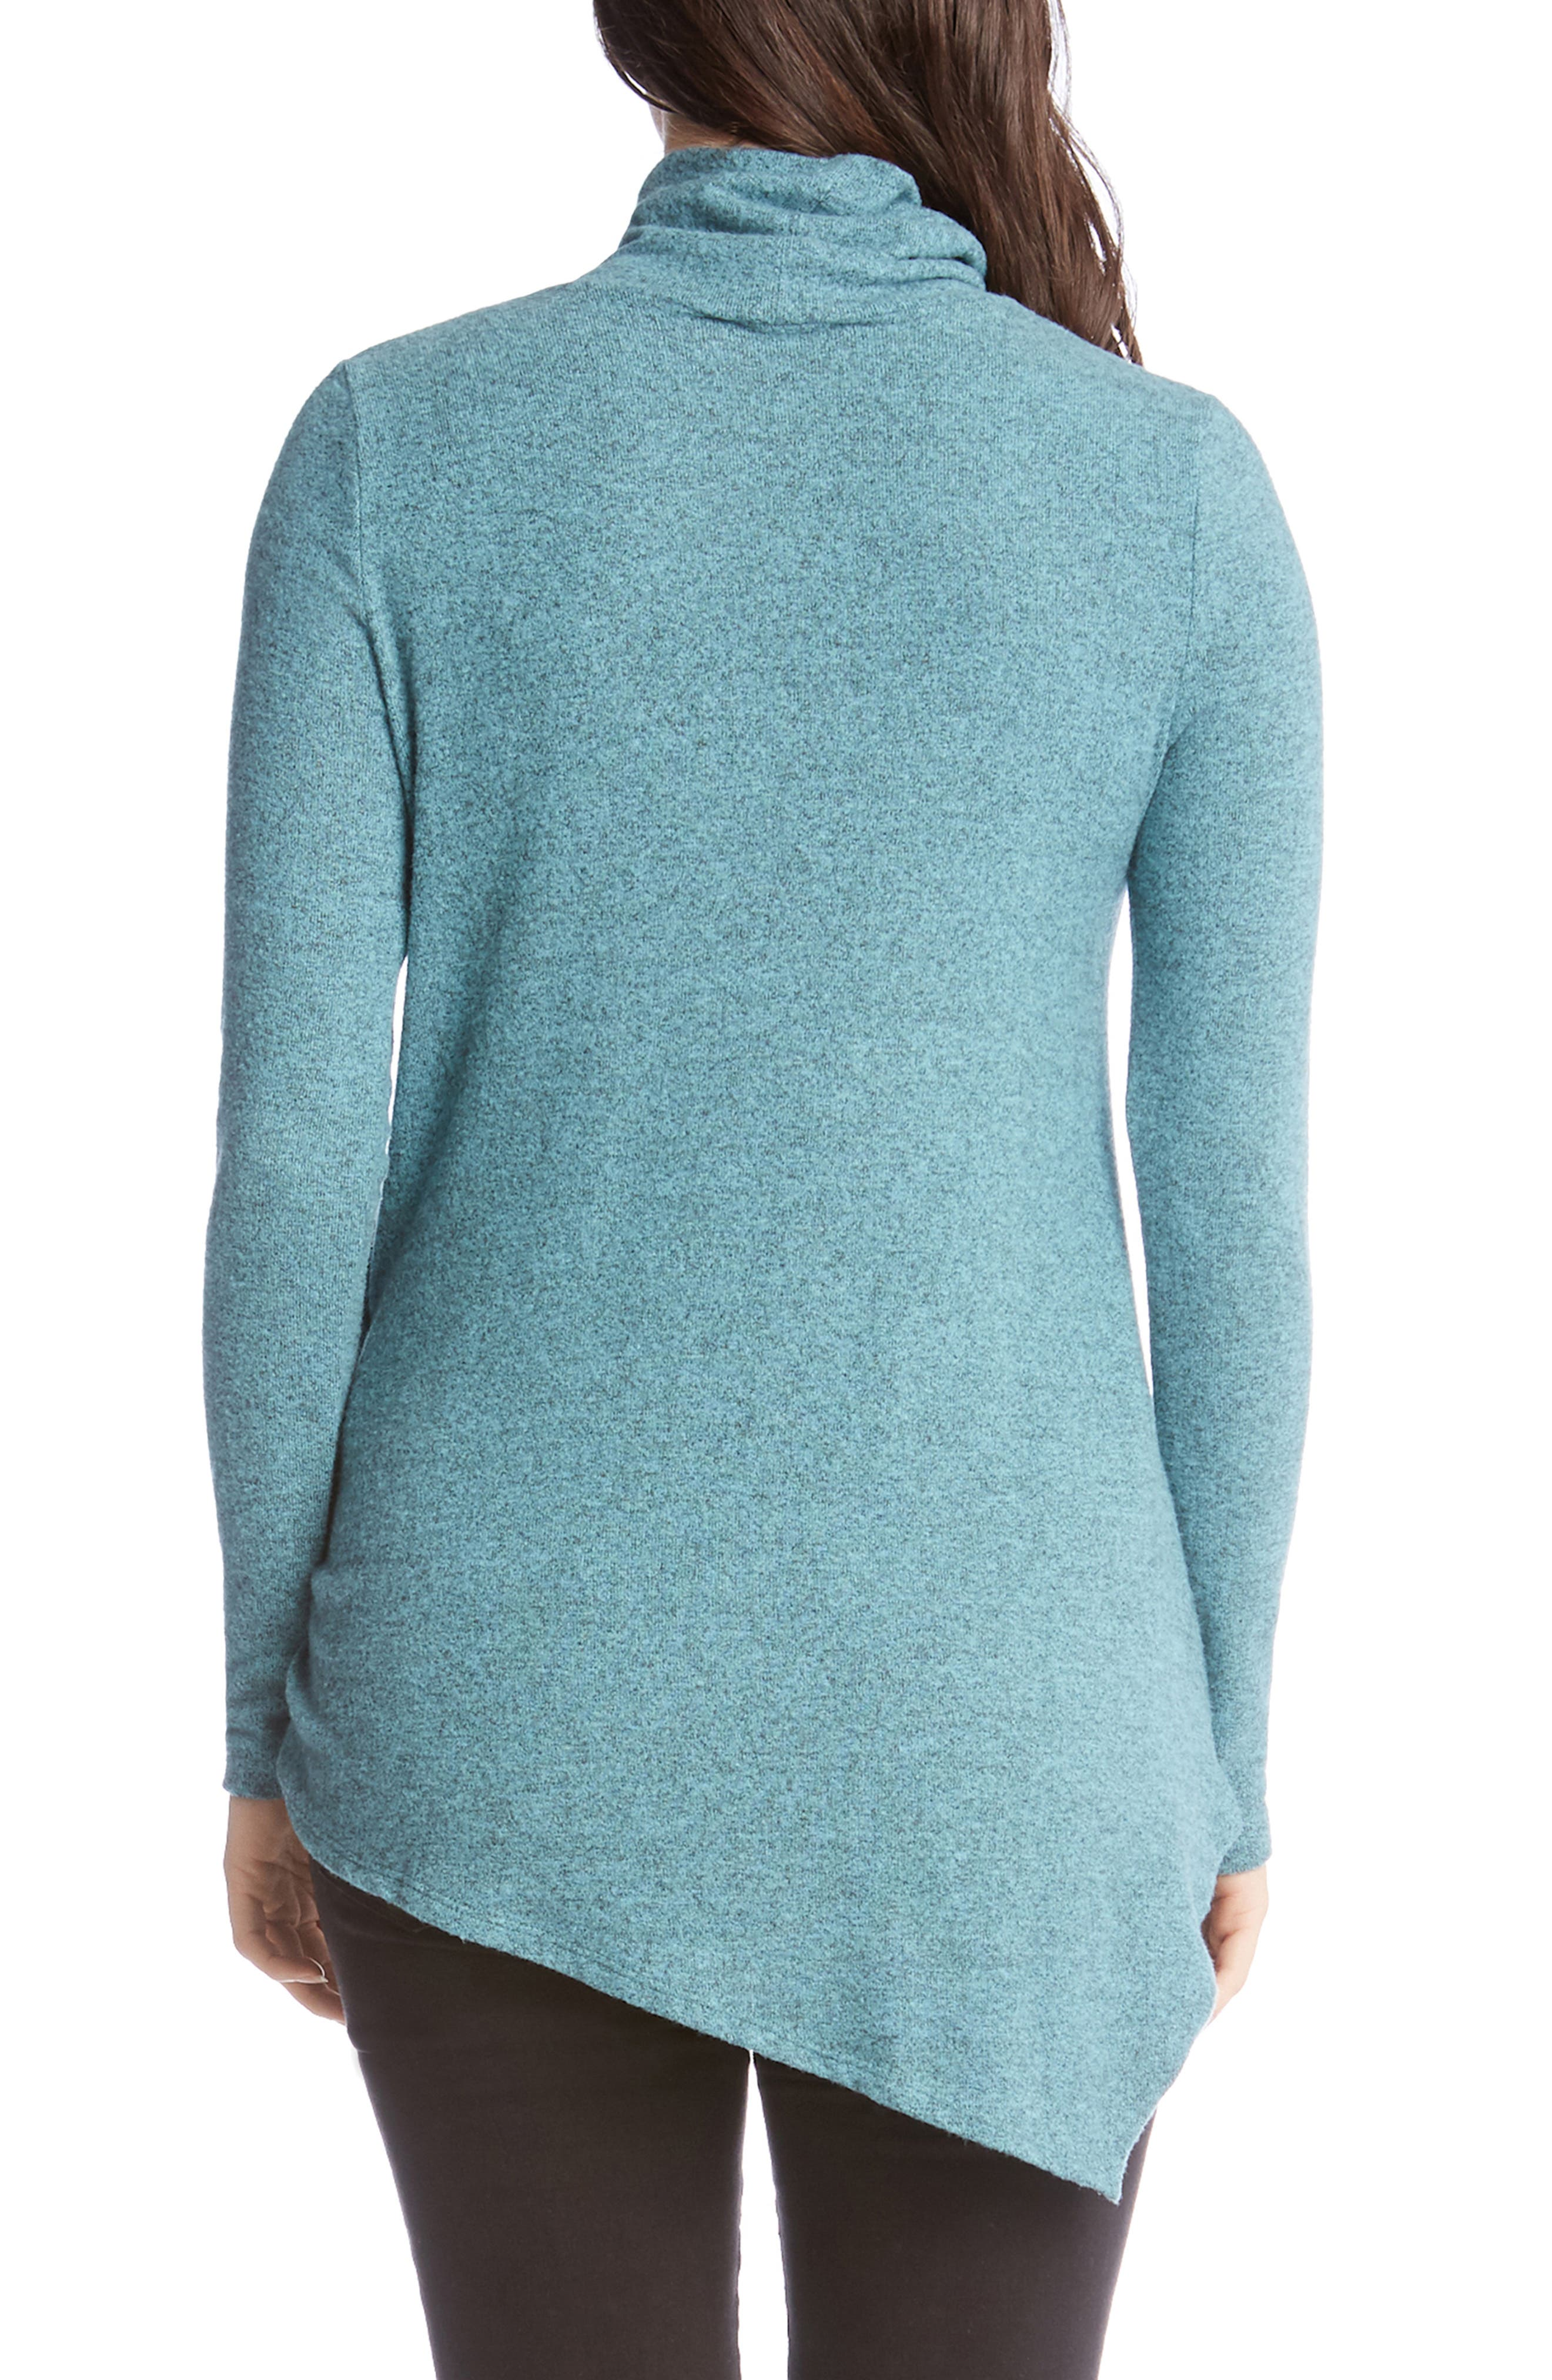 Asymmetrical Turtleneck Sweater,                             Alternate thumbnail 2, color,                             JADE